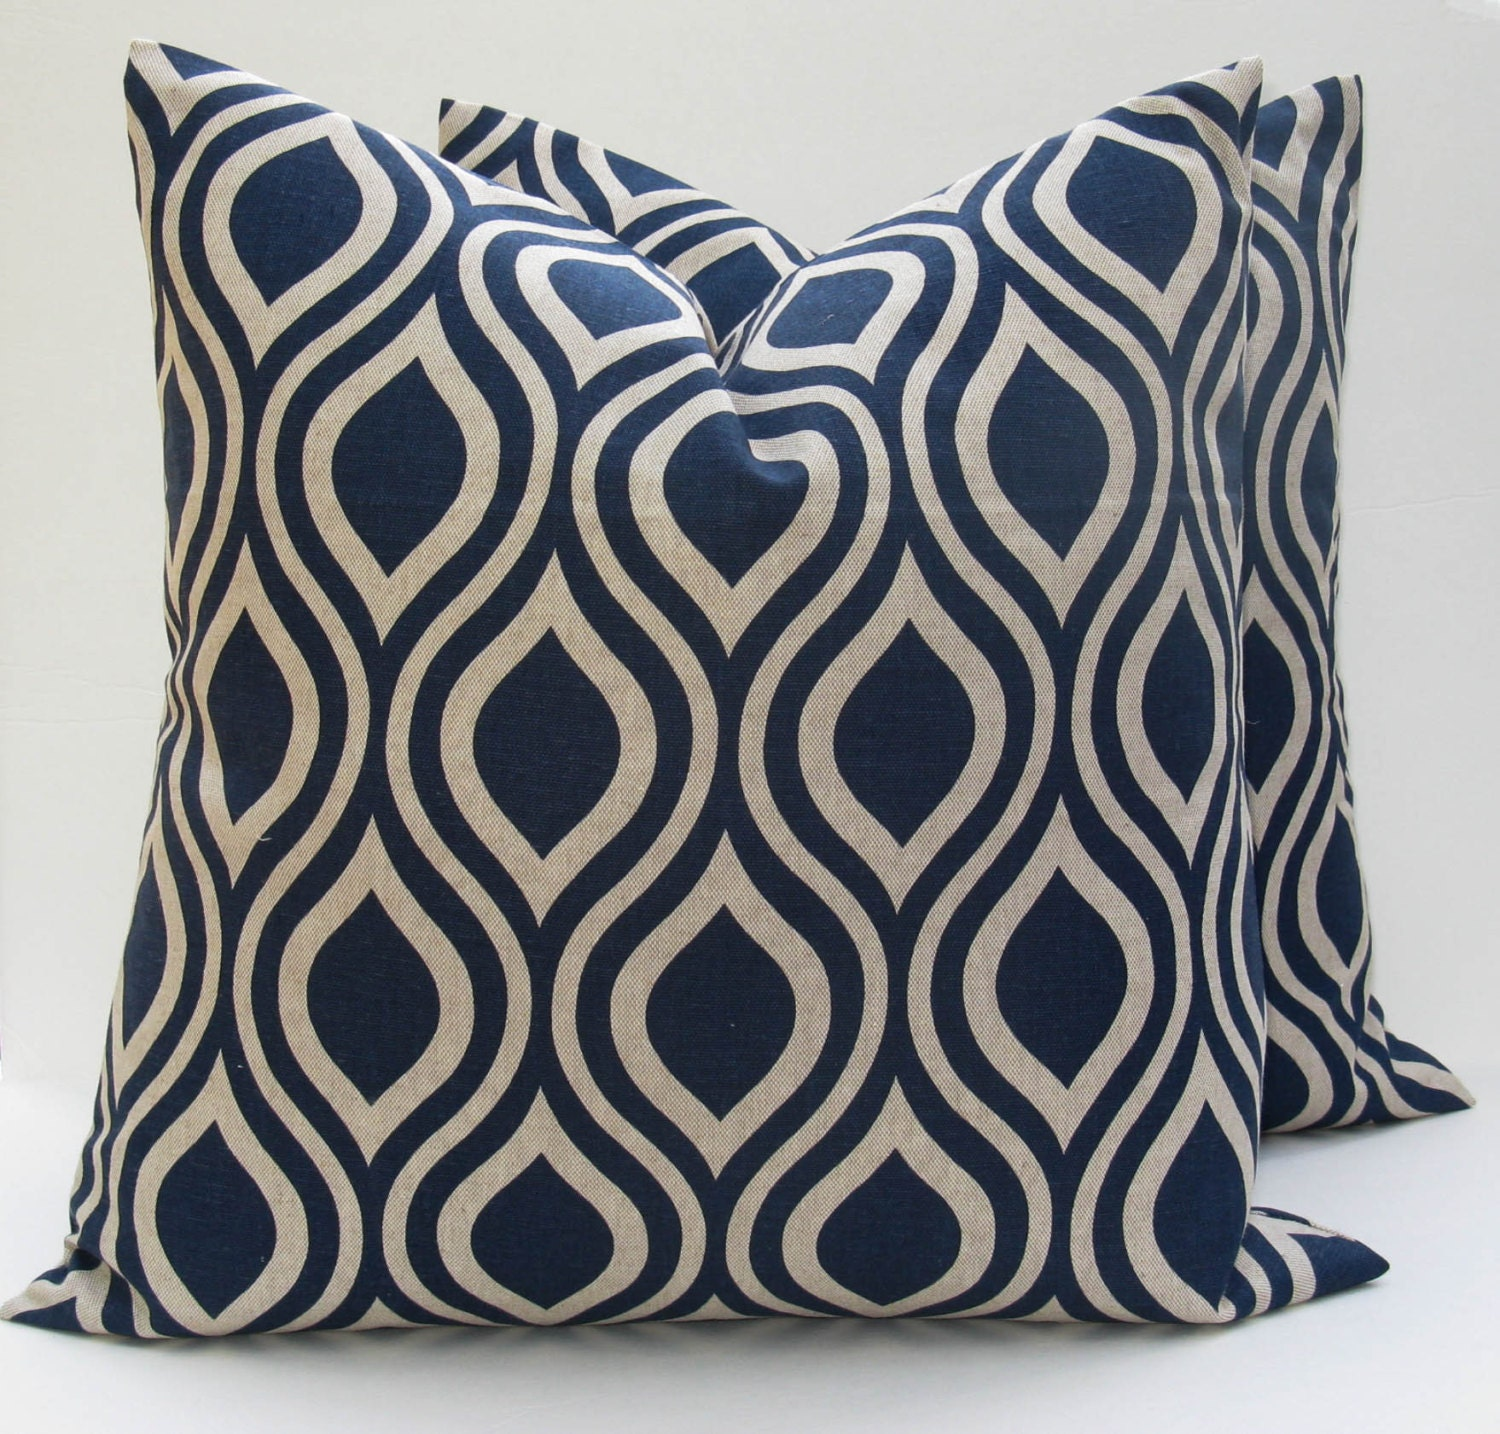 Throw Pillow Covers 20x20 : Blue Pillow Blue Pillow Covers Throw Pillow by EastAndNest